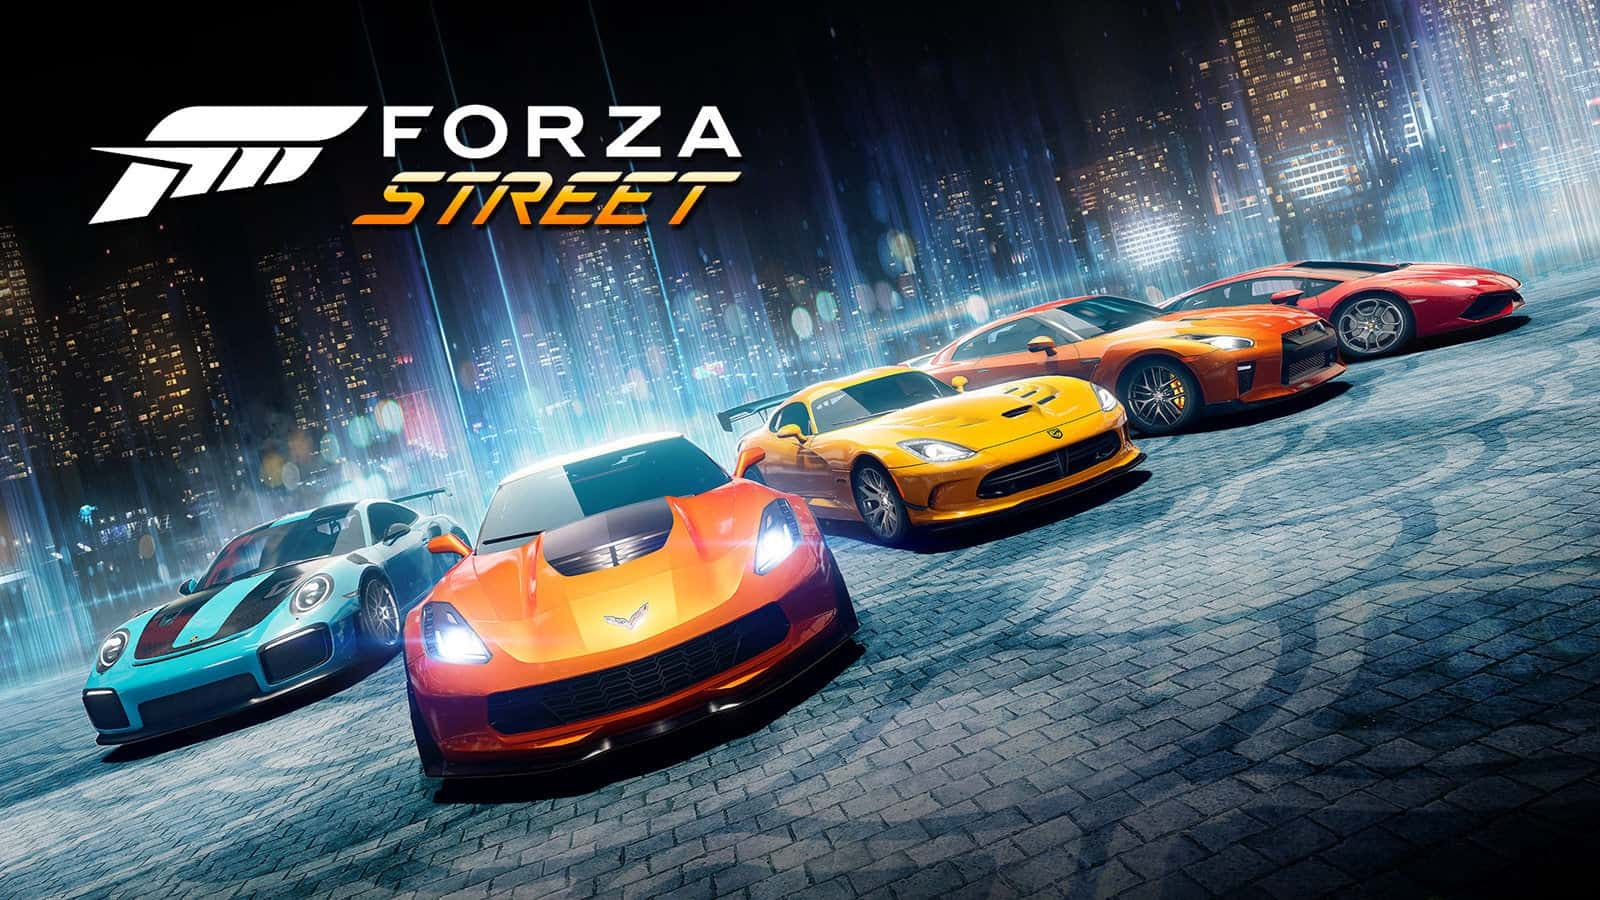 Forza Street lands on iOS and Android 5th May